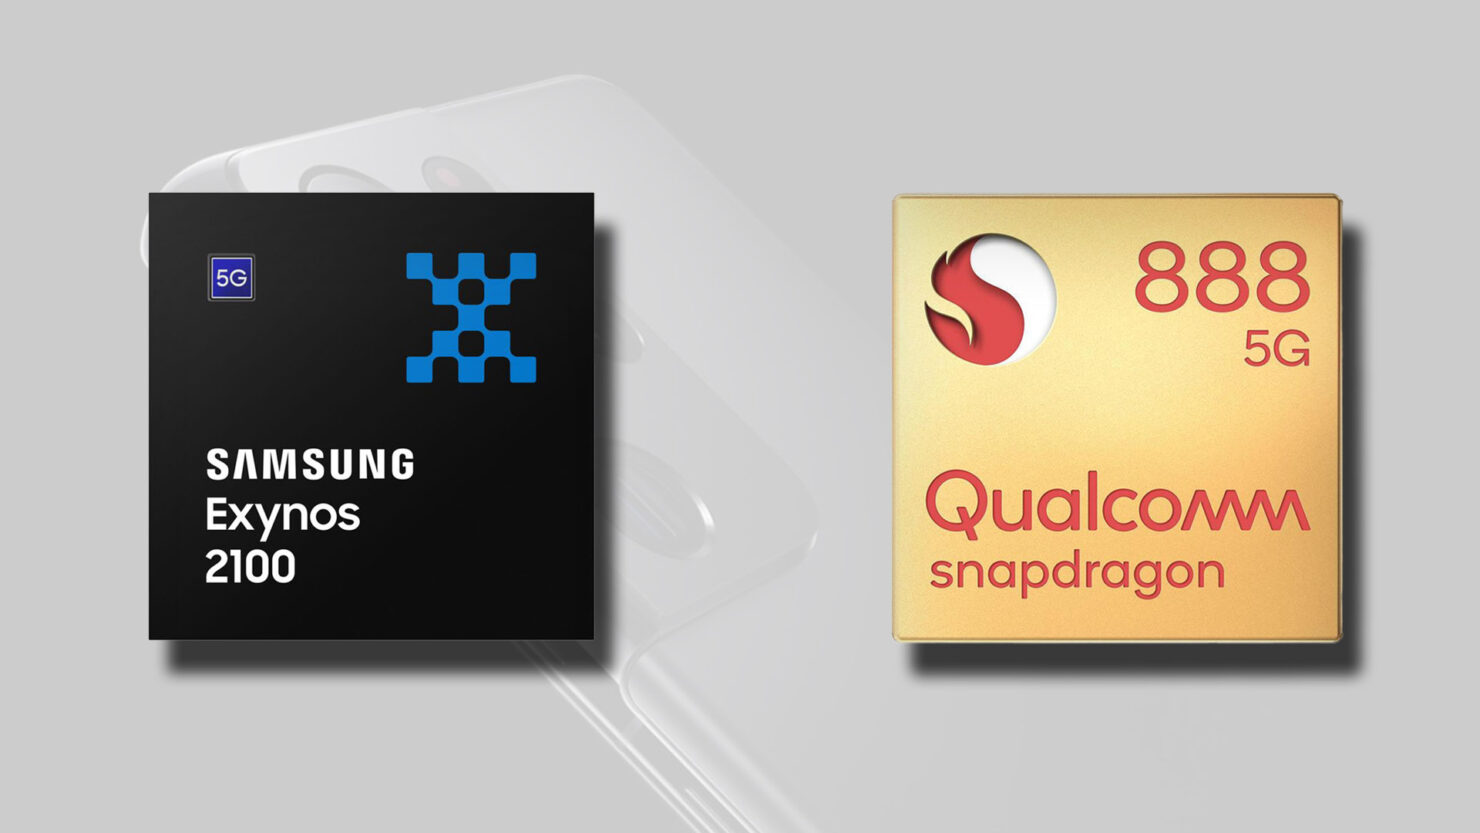 Galaxy S21 Ultra Speed Test Shows Exynos 2100, Snapdragon 888 Being Competitive, With an Interesting Result at the End